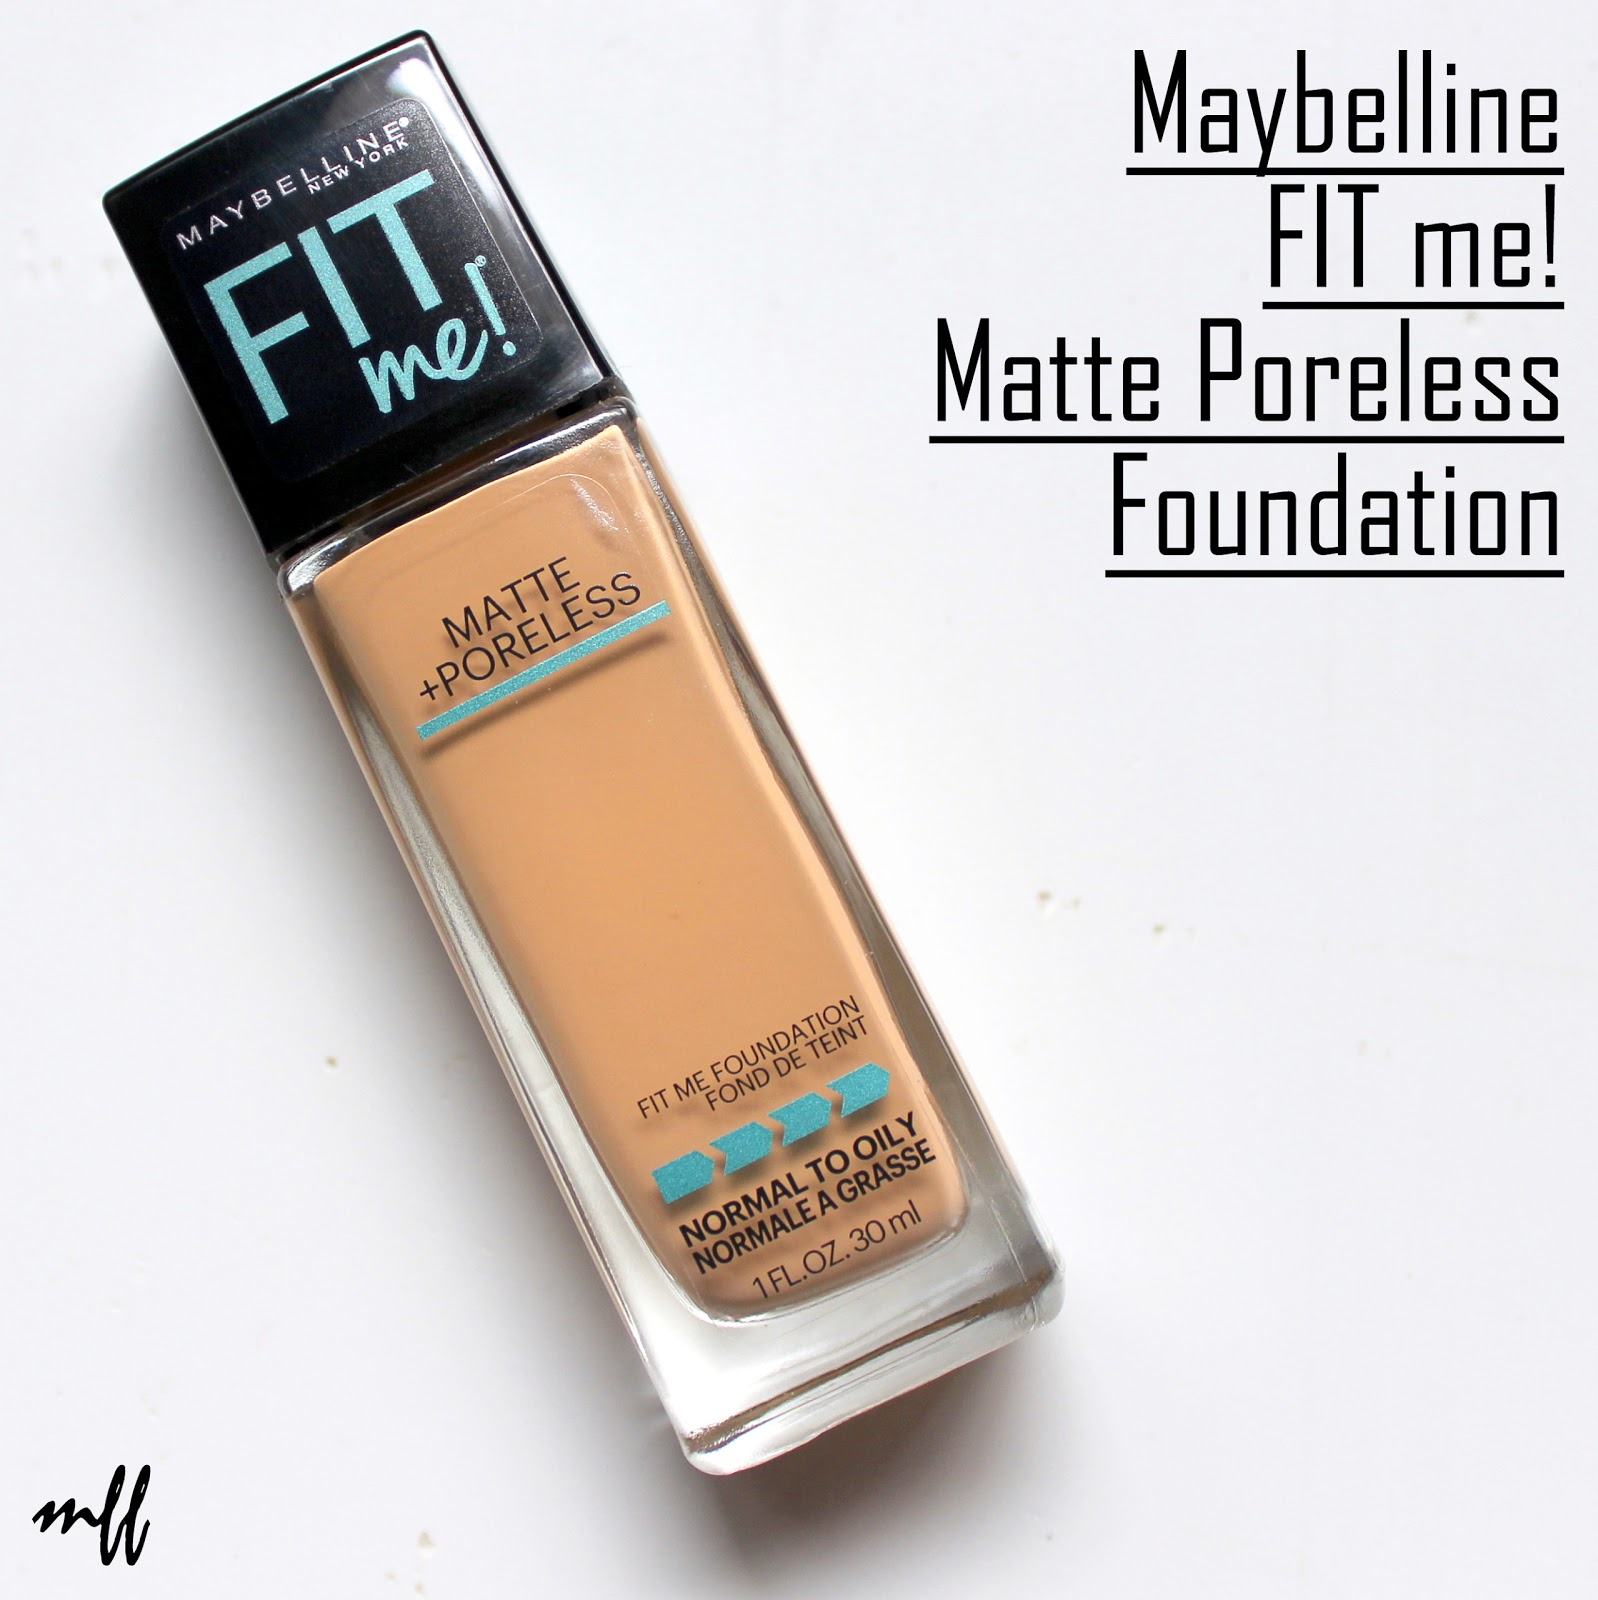 Makeup And Fashion Freak Maybelline Fit Me Matte Poreless Foundation 30ml India Review Swatches